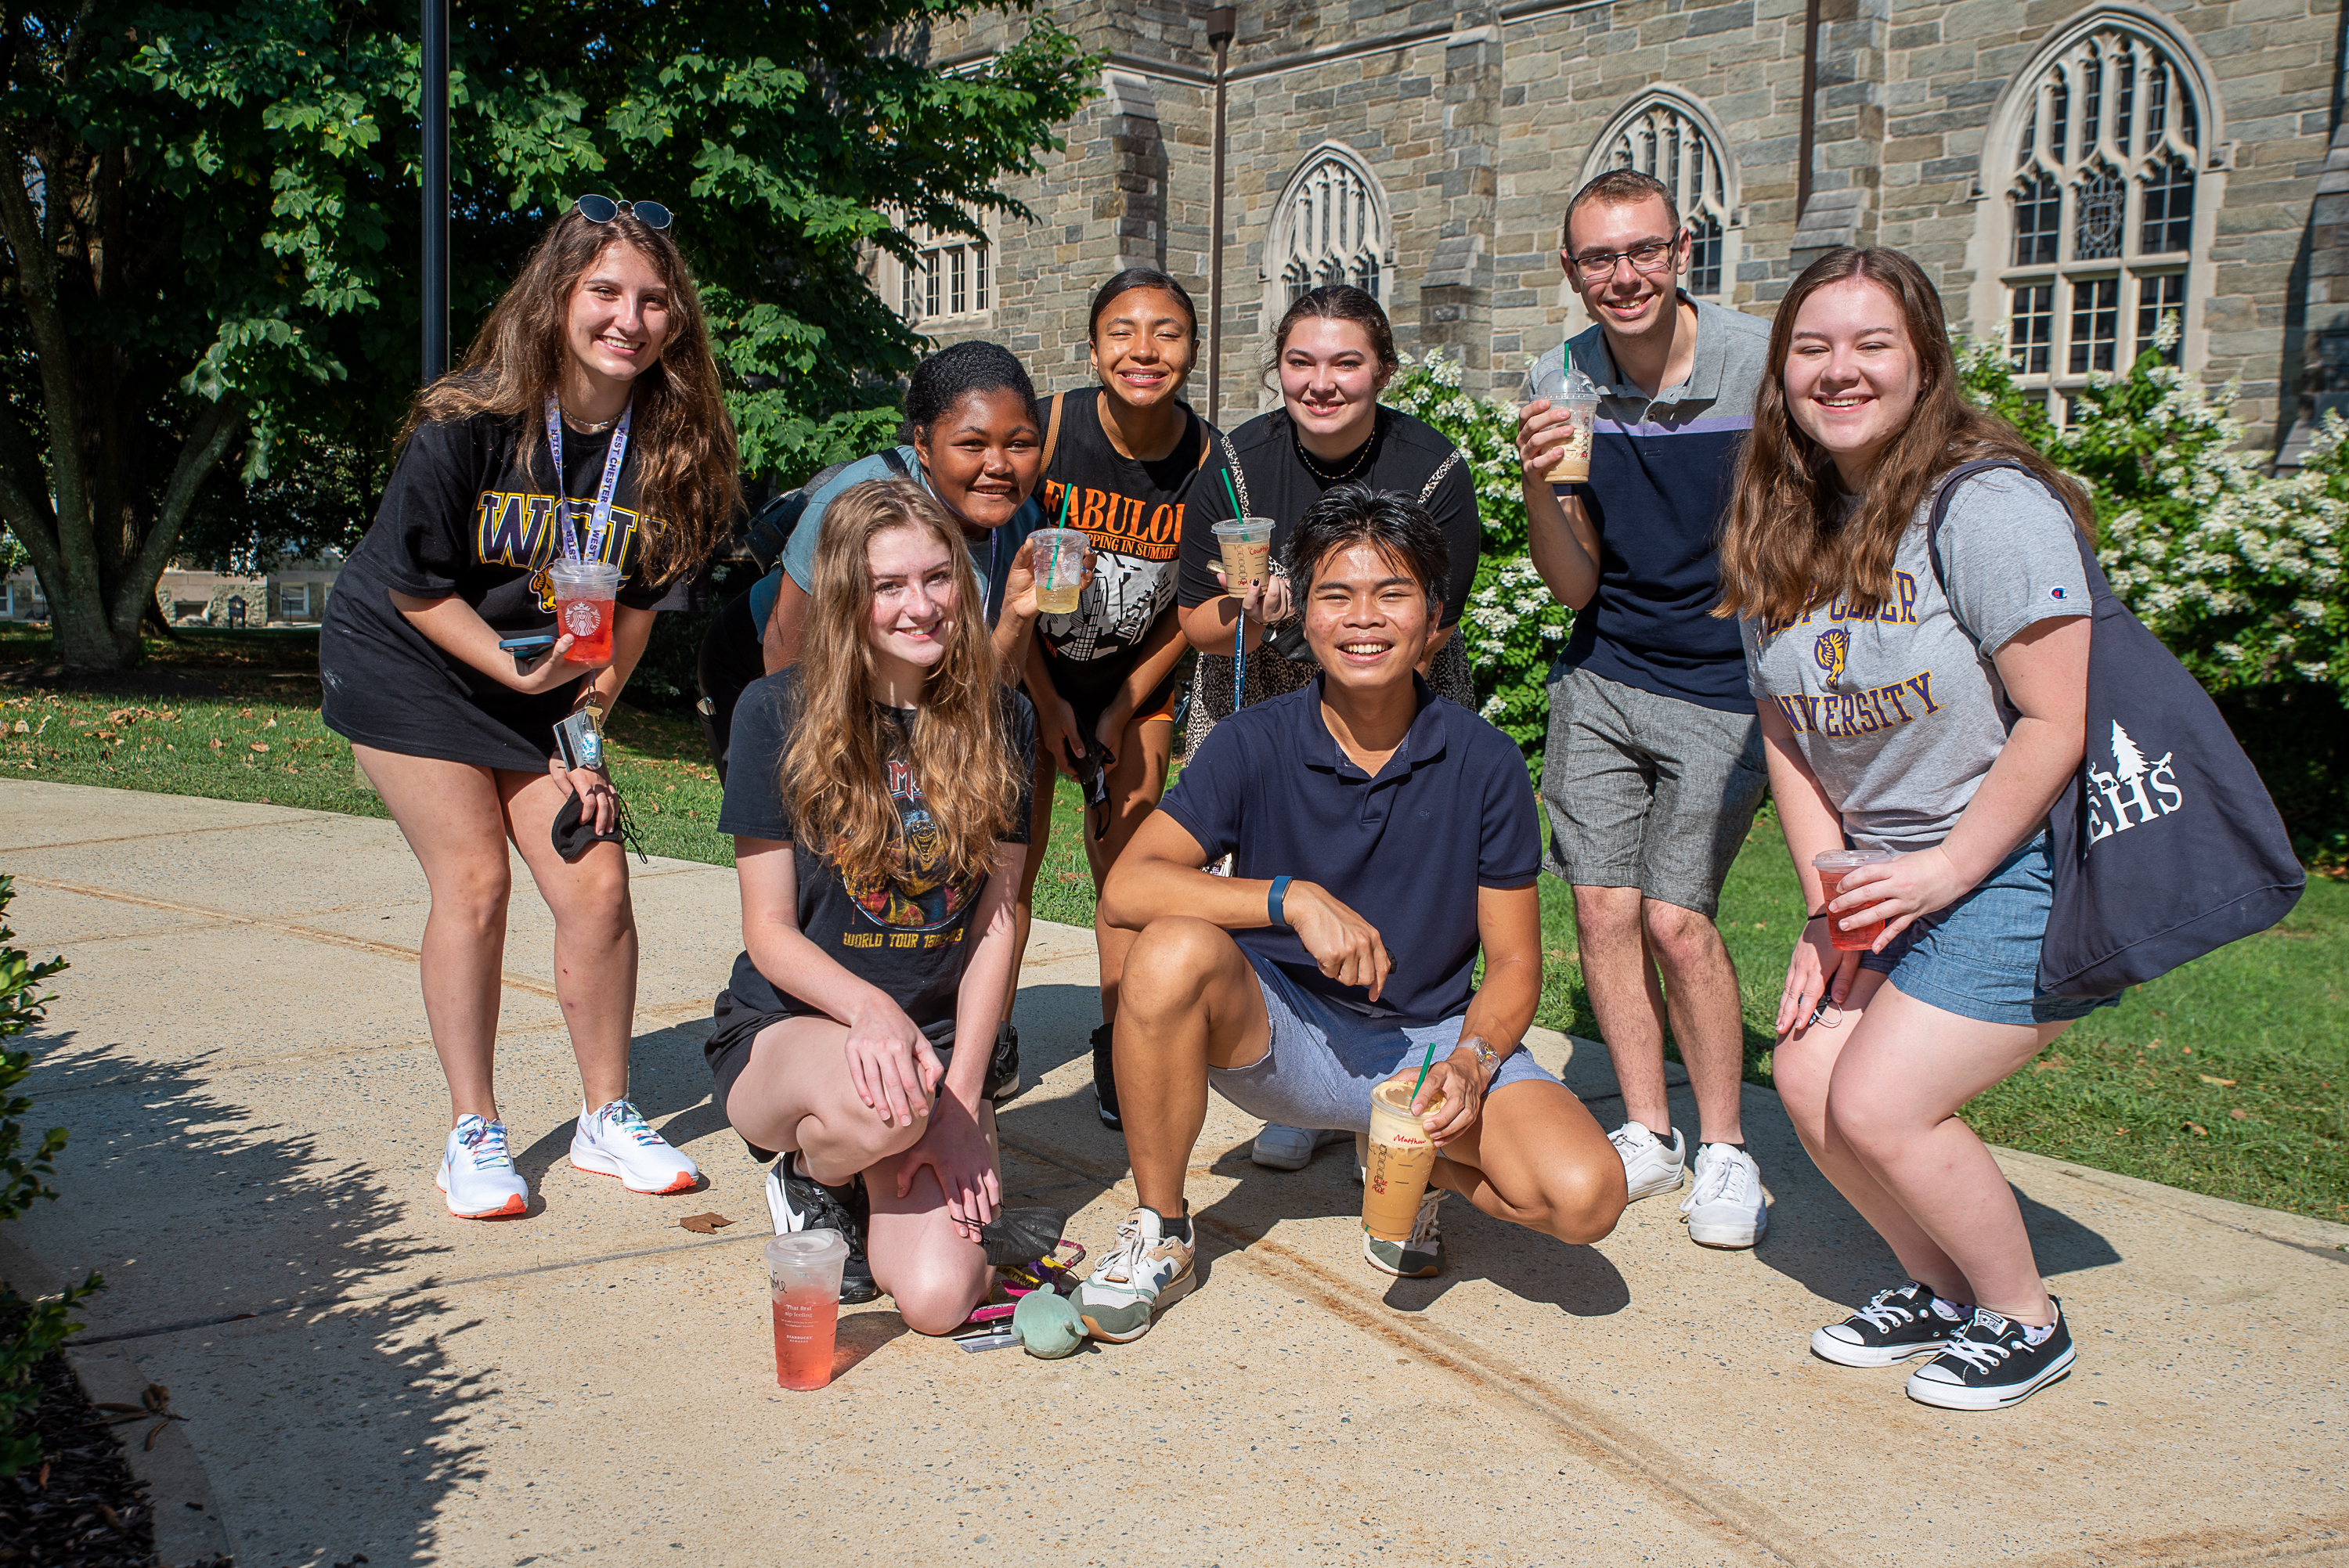 Campus life at West Chester University.